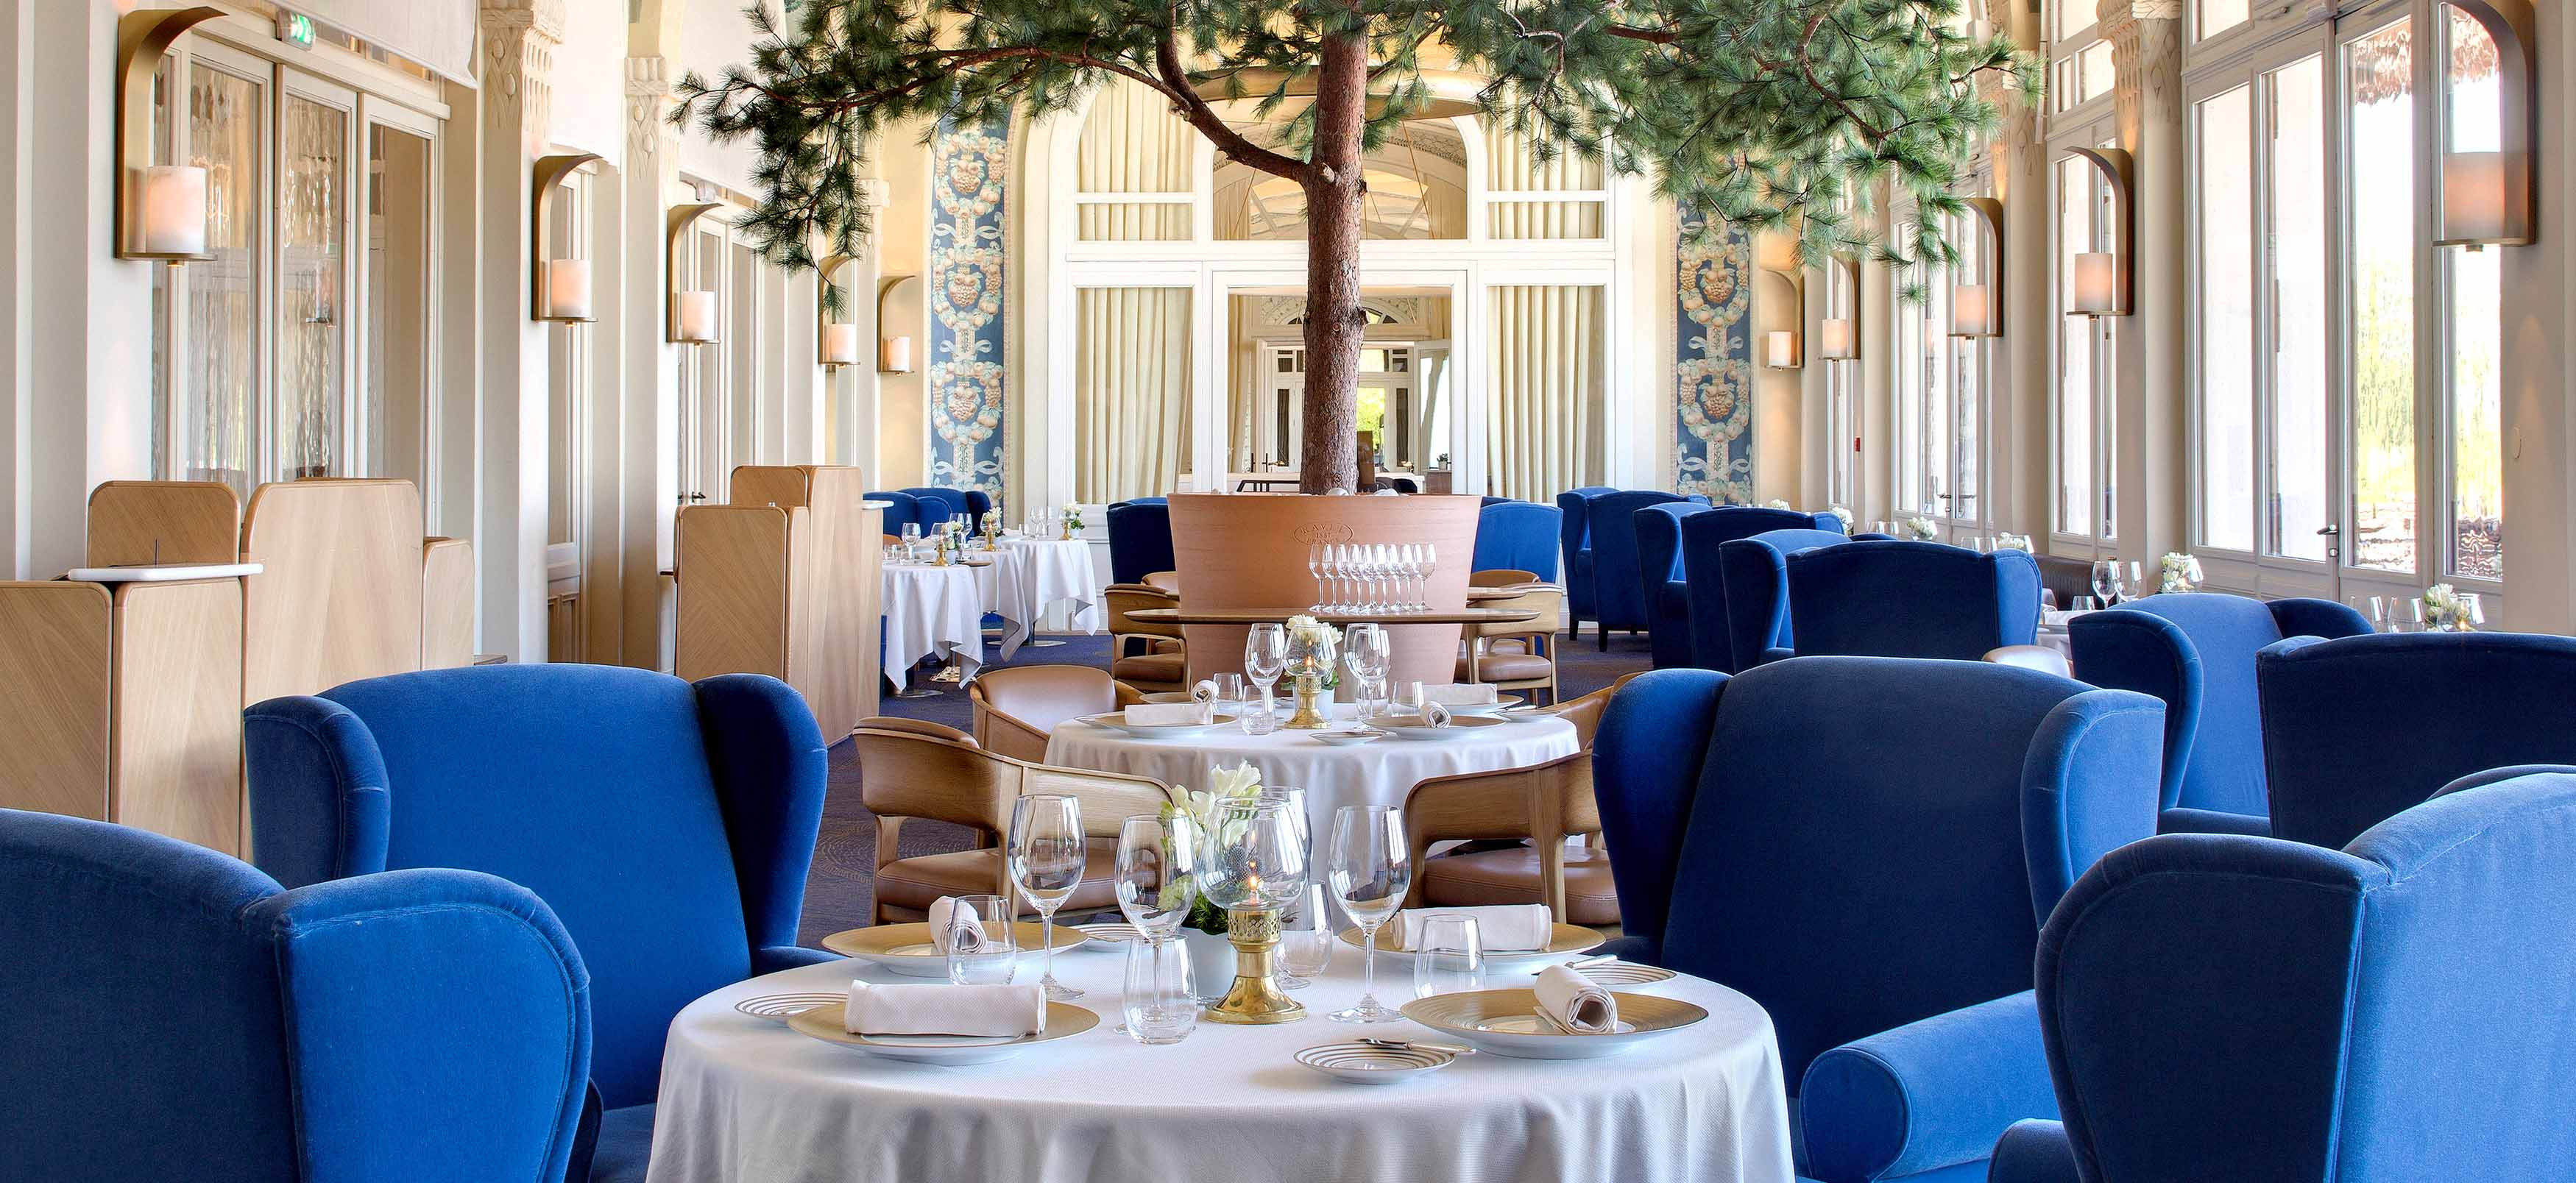 fine dining gastronomics restaurants in evian view geneva lake luxury. Black Bedroom Furniture Sets. Home Design Ideas